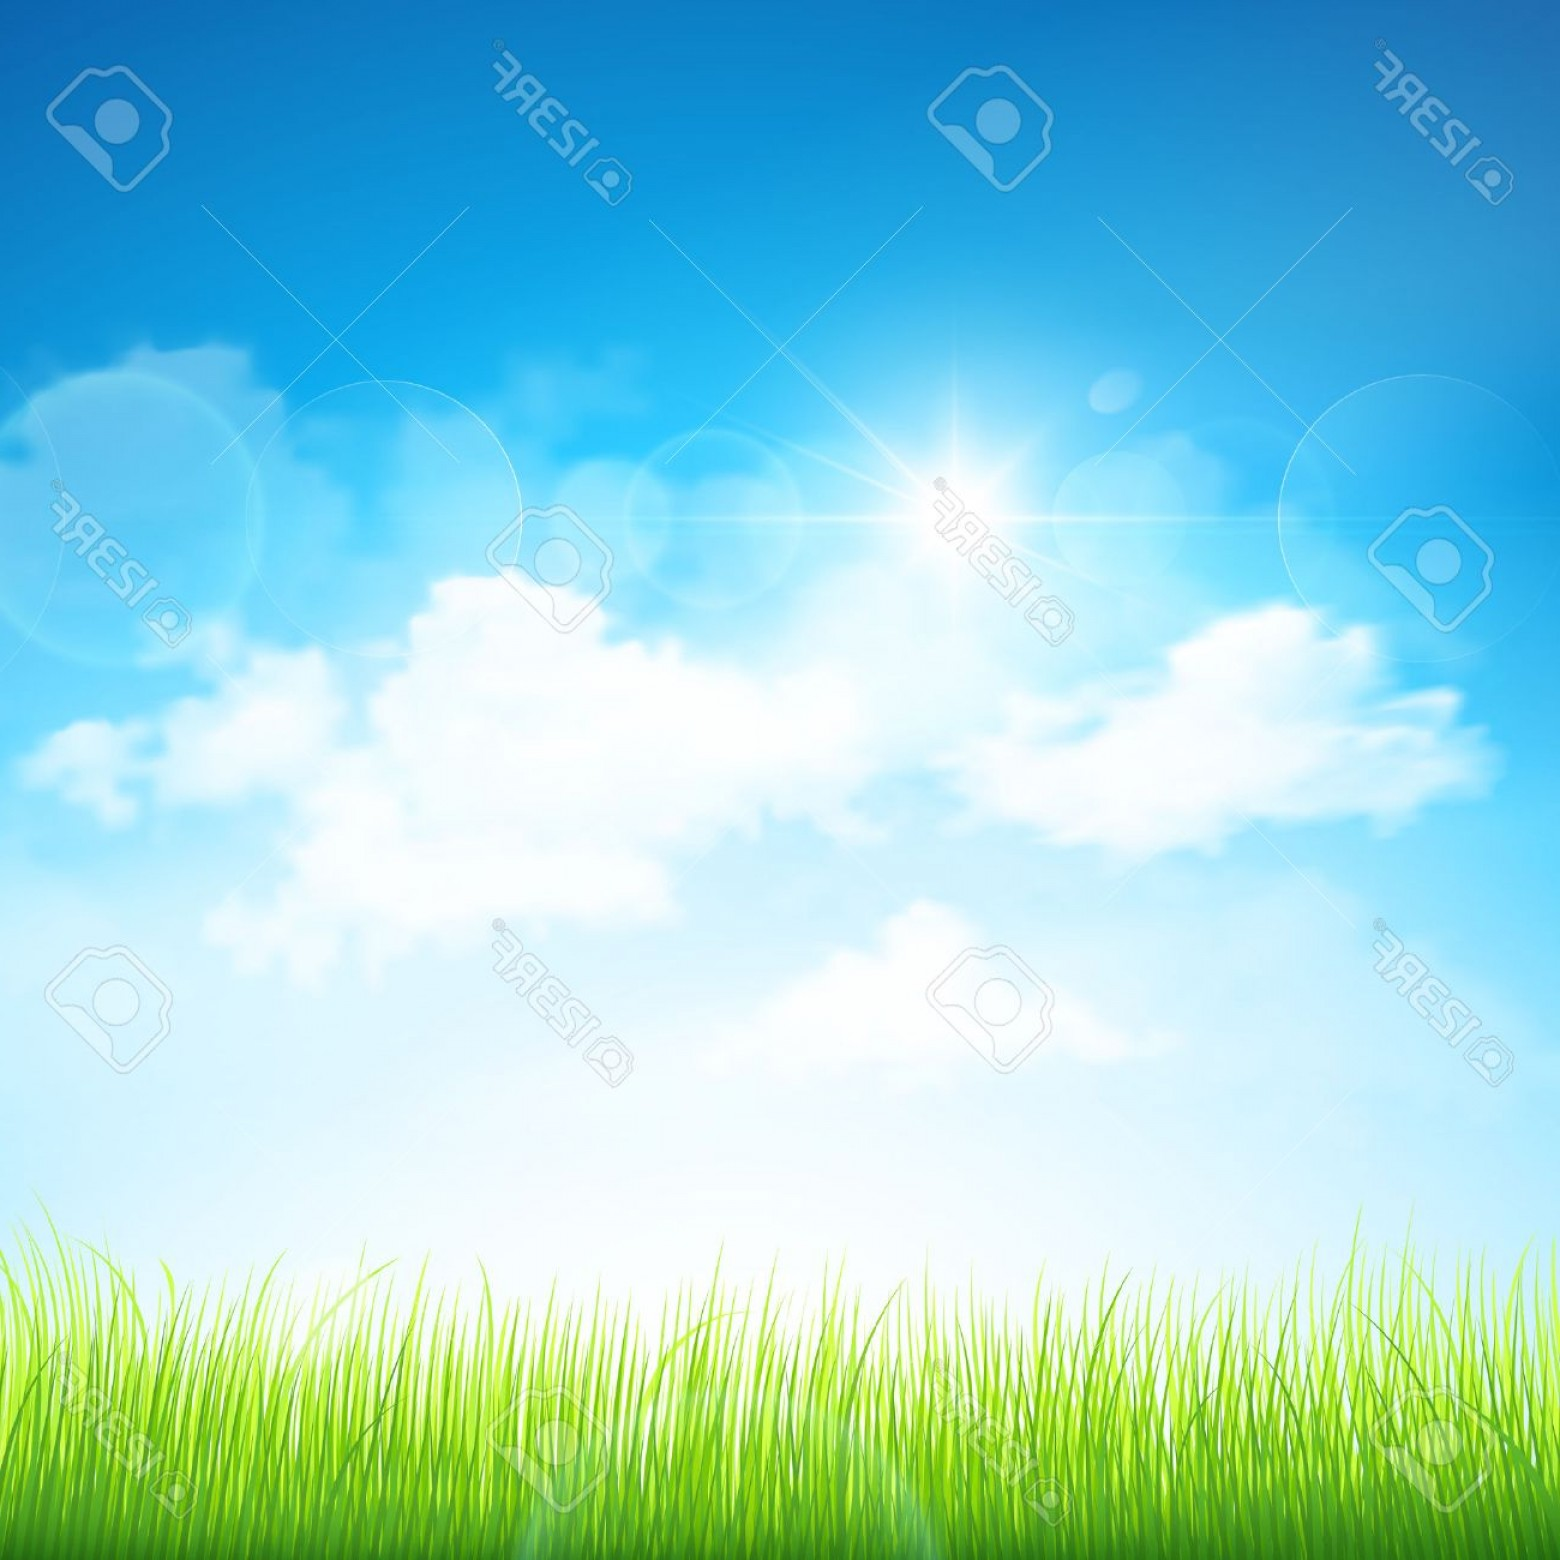 Vector Natural Background Sky: Photonatural Background With Green Grass And Blue Sky With Clouds Vector